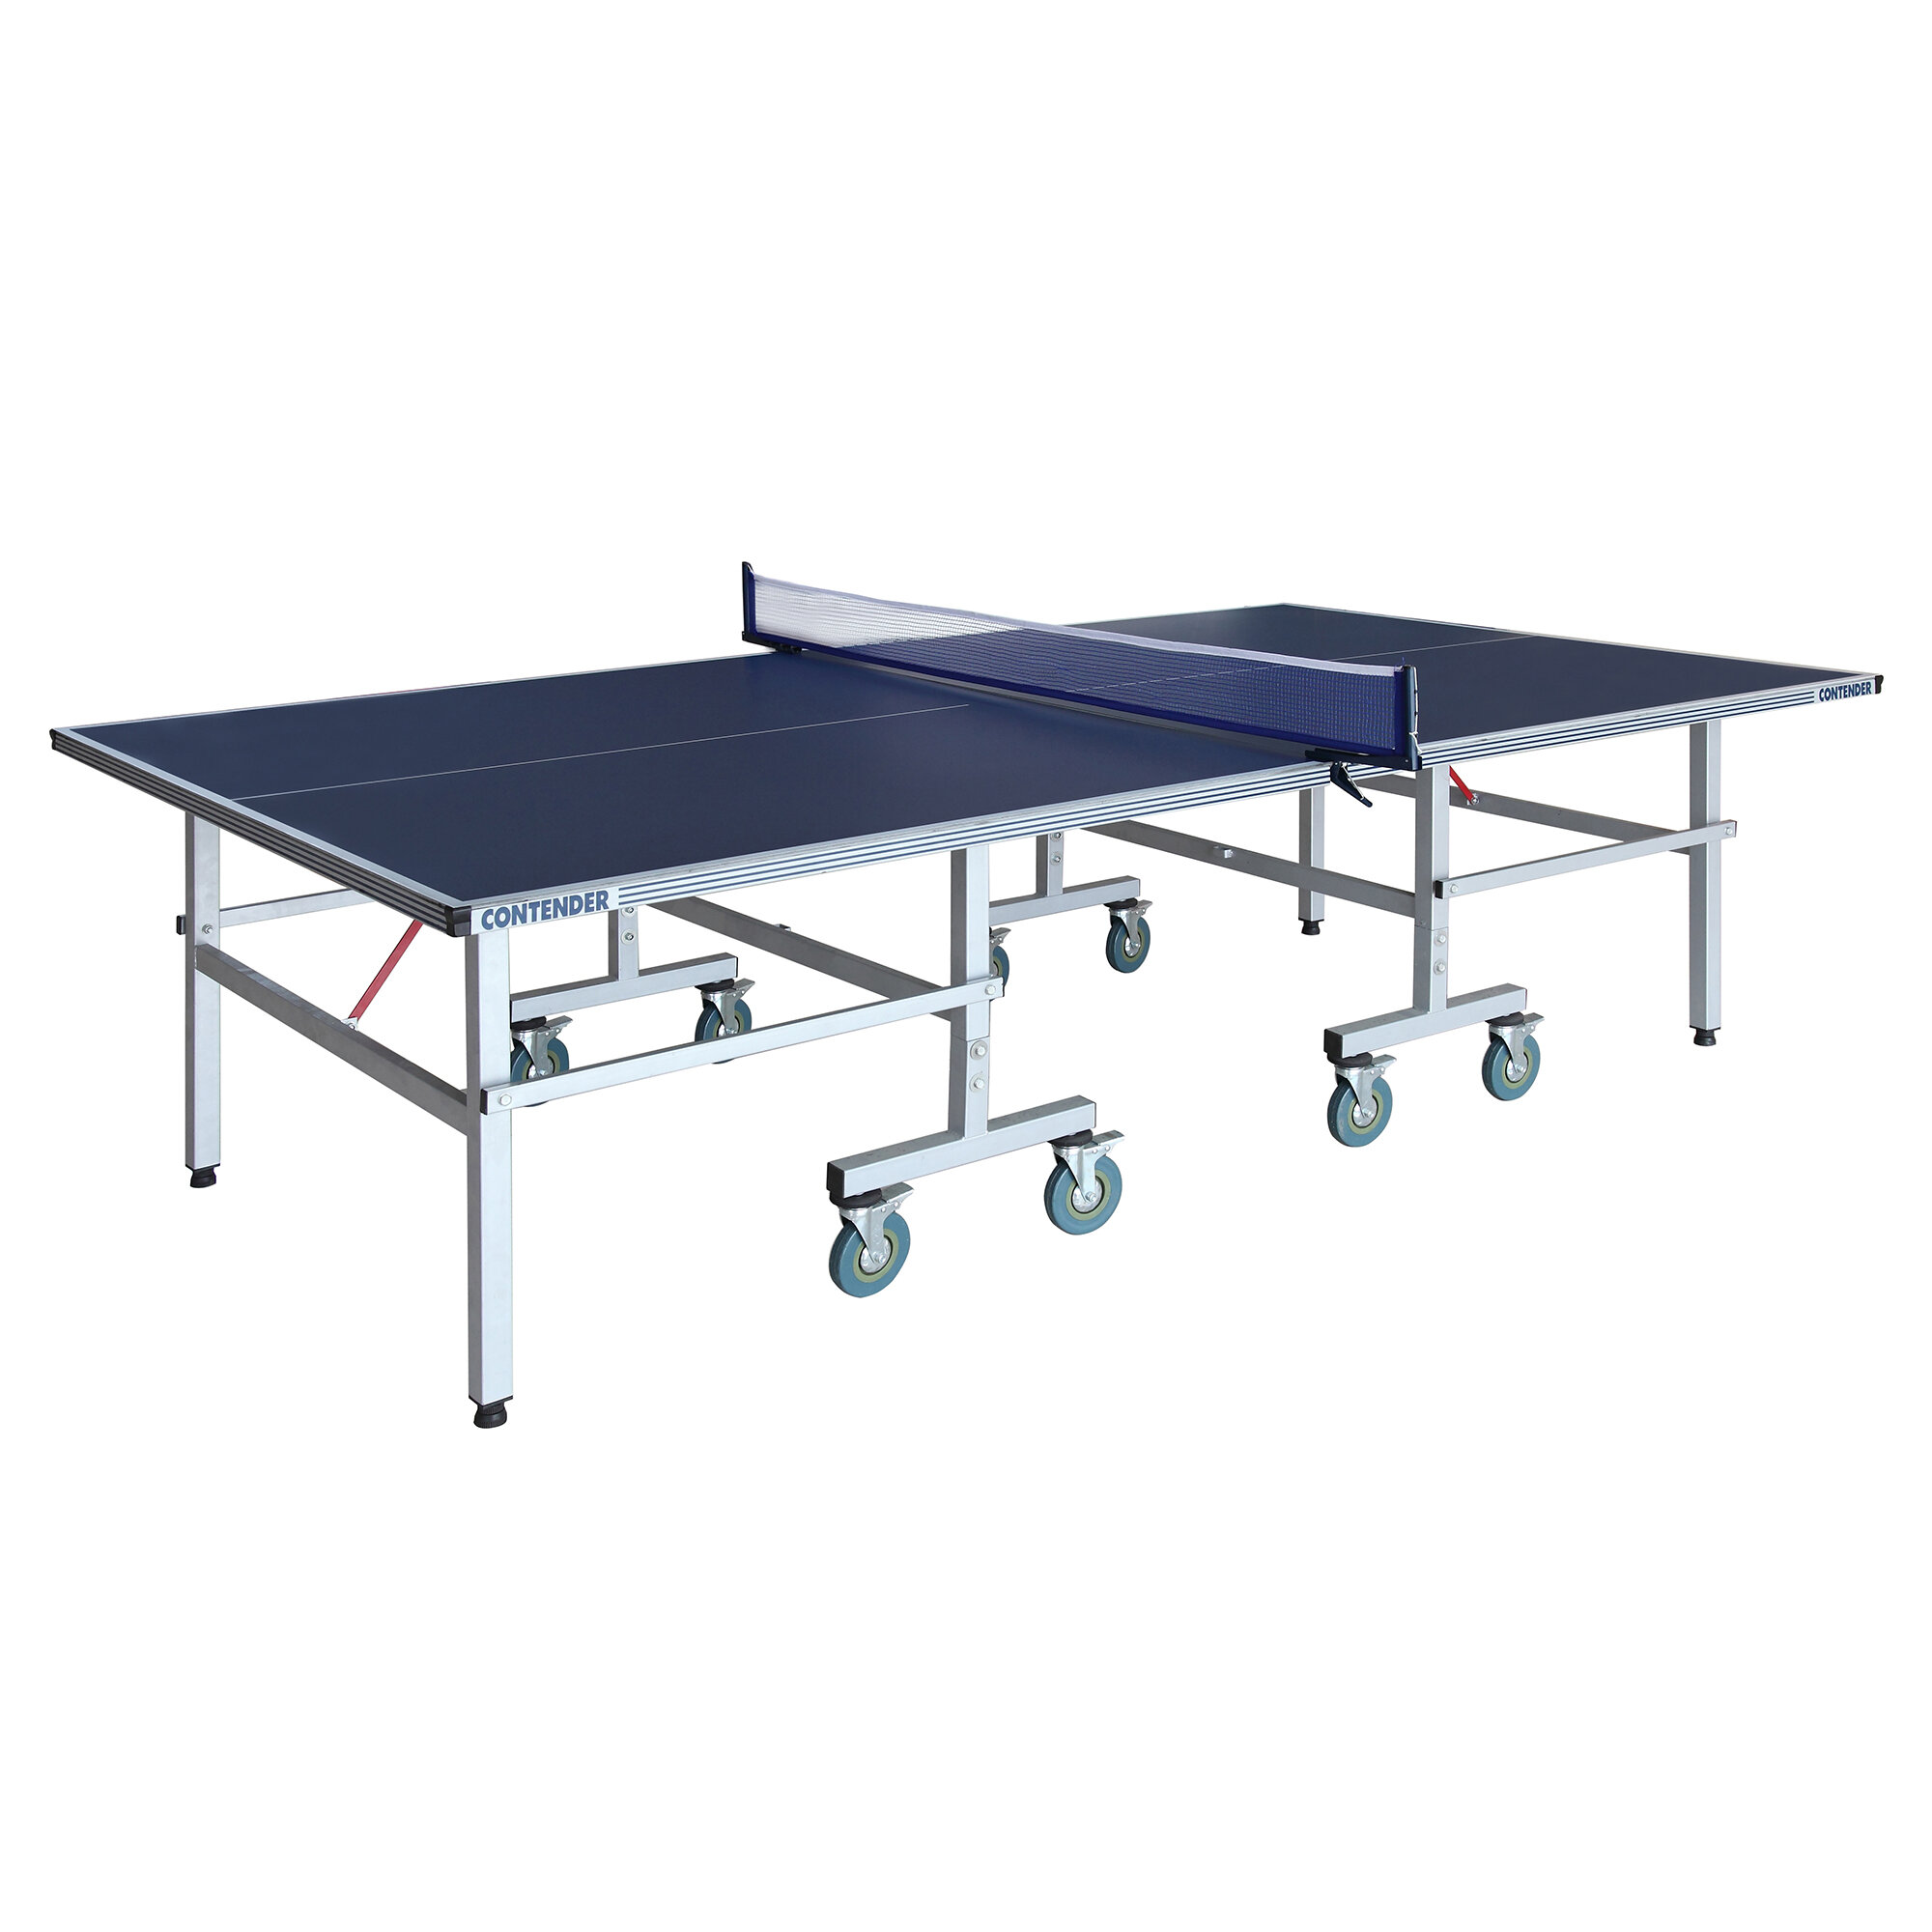 Hathaway Games Contender Regulation Size Foldable Indoor Outdoor Table Tennis Table With Paddles And Balls 38mm Thick Reviews Wayfair